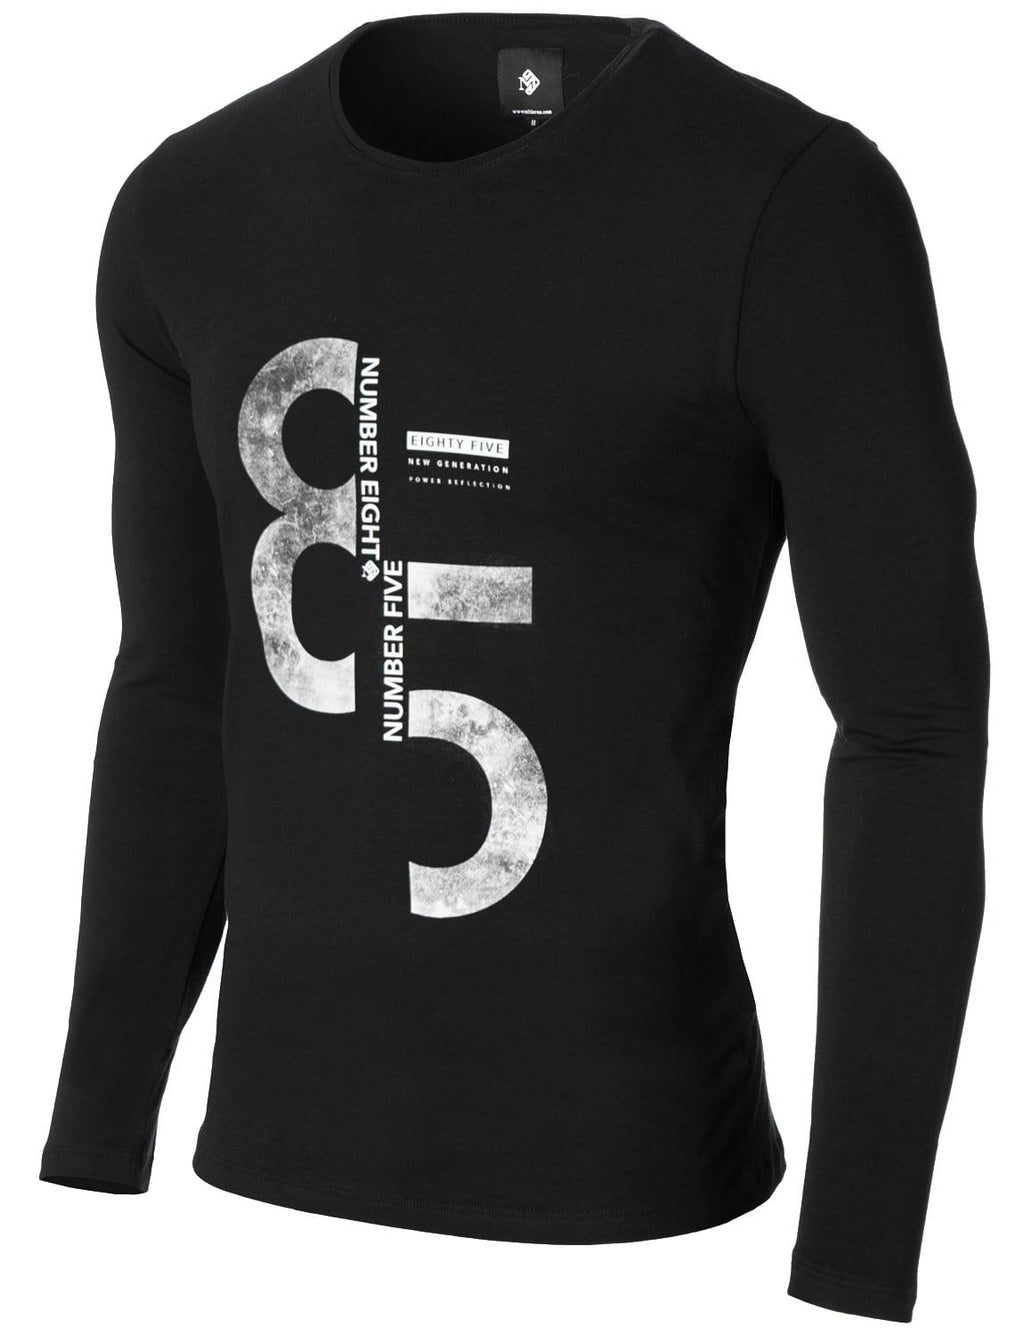 Mens Long Sleeve 85 Print T-shirt Black